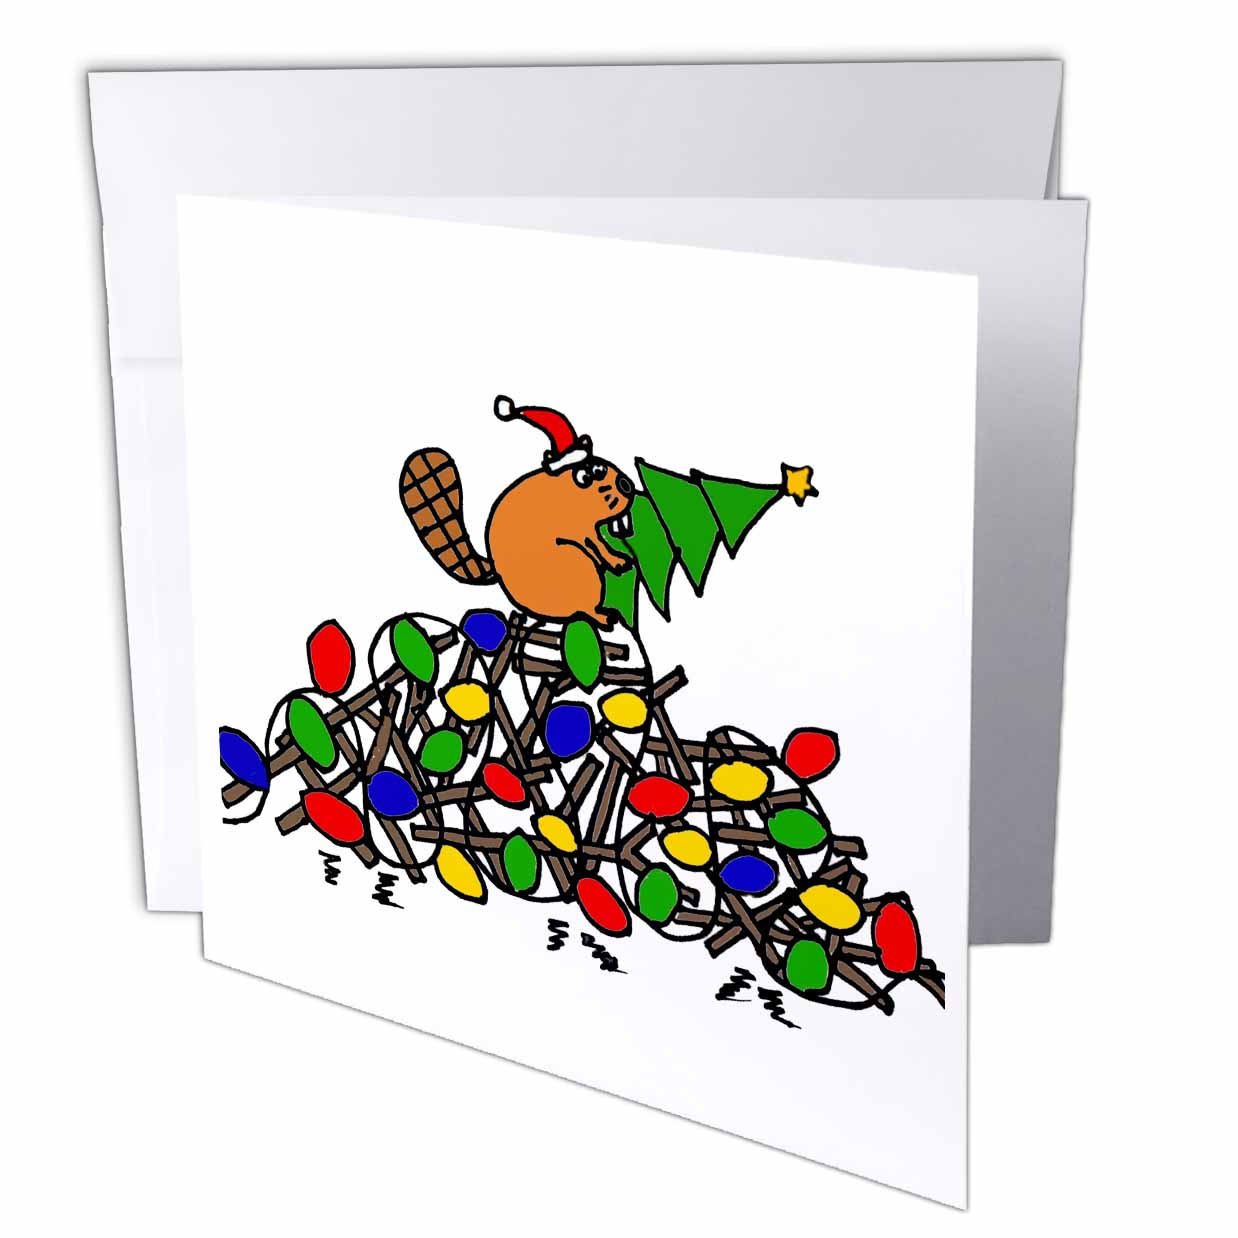 3dRose Funny Beaver on Dam Decorated with Christmas Lights, Greeting Cards, 6 x 6 inches, set of 12